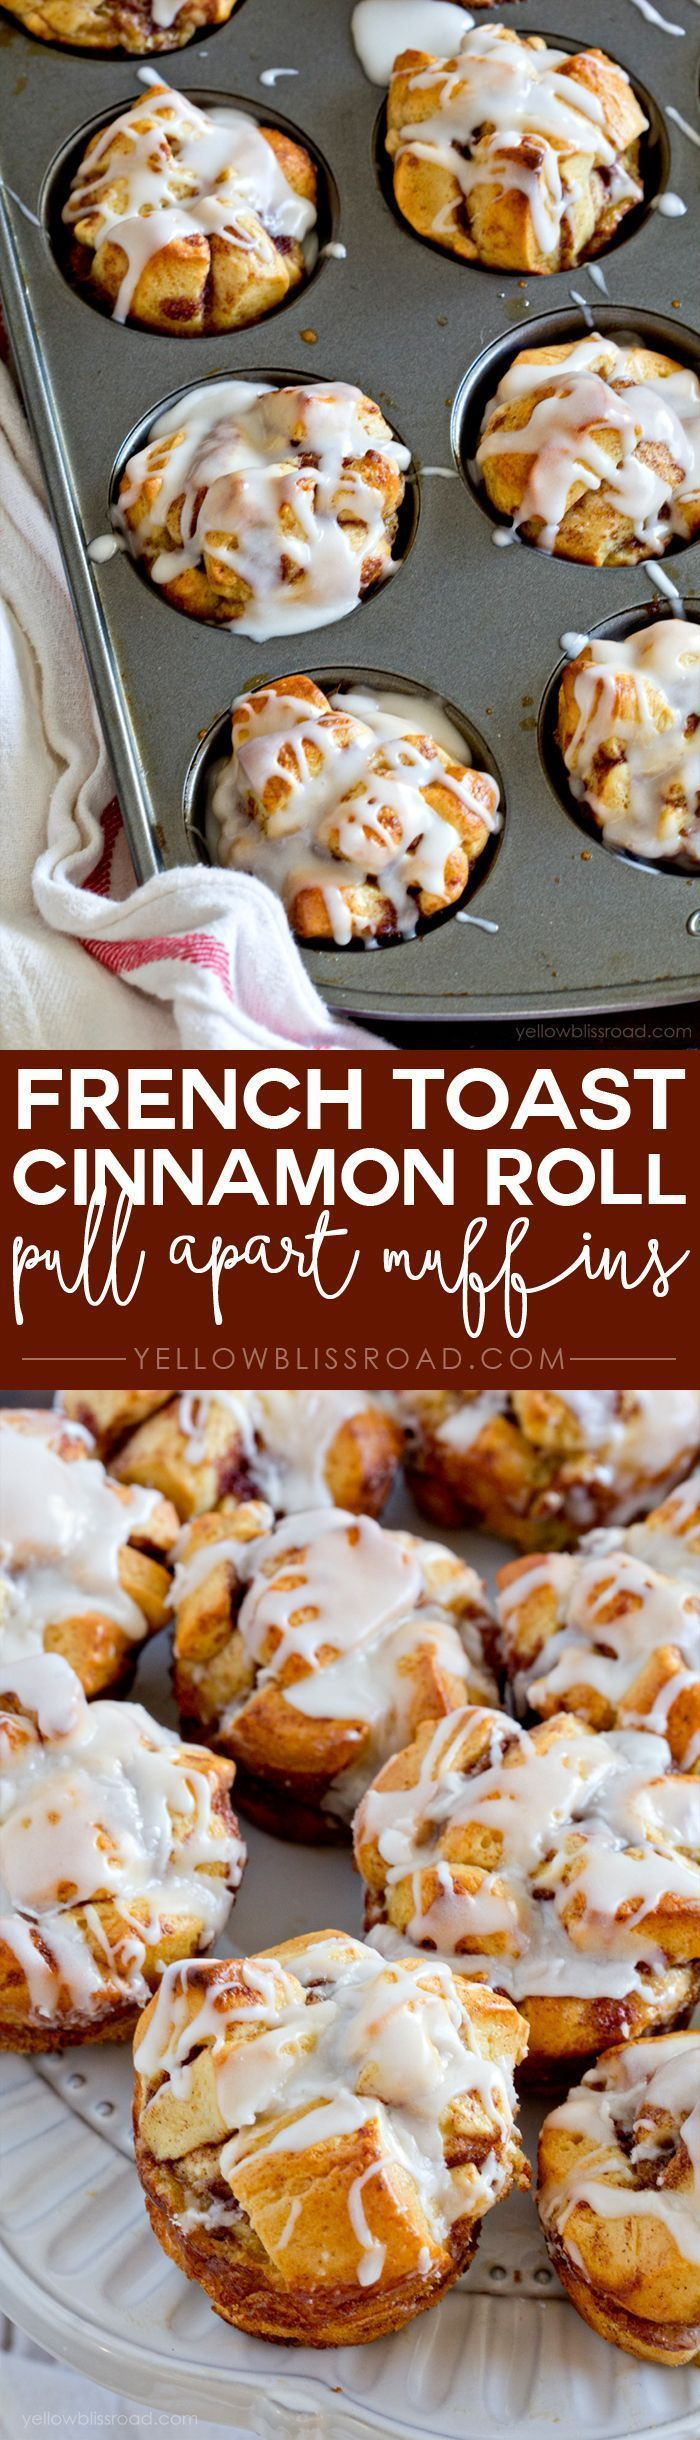 French Toast Cinnamon Roll Pull Apart Muffins recipe